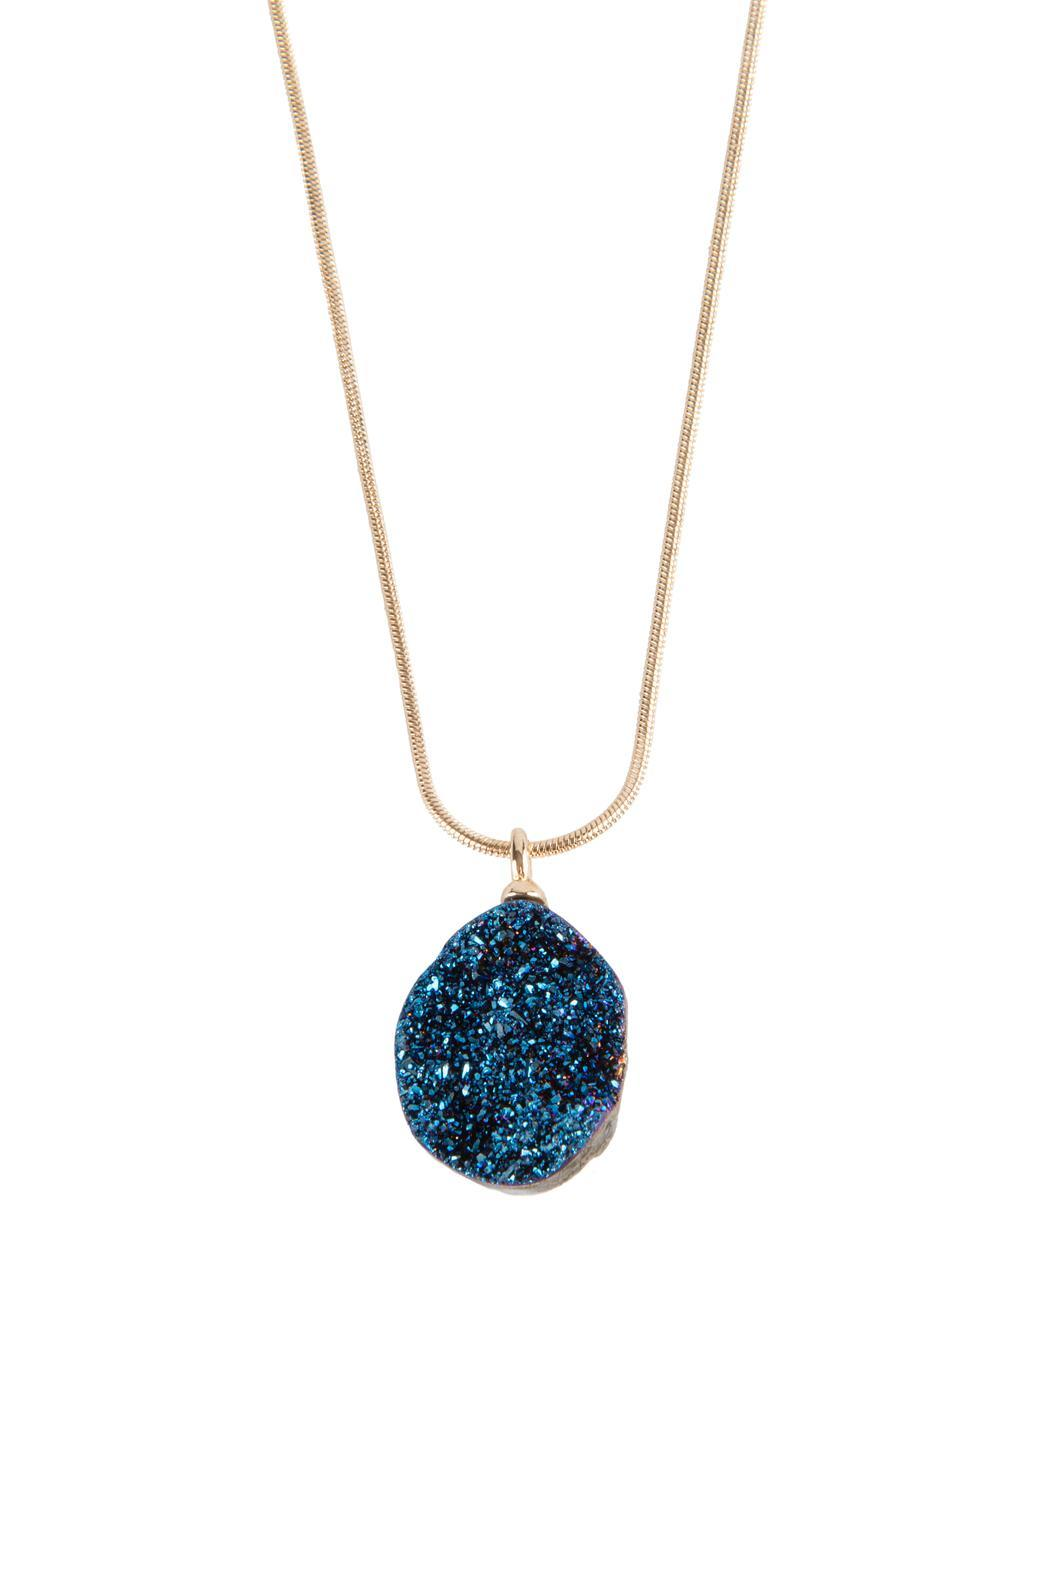 Niqua Jewelry Metalized Geode Necklace - Main Image